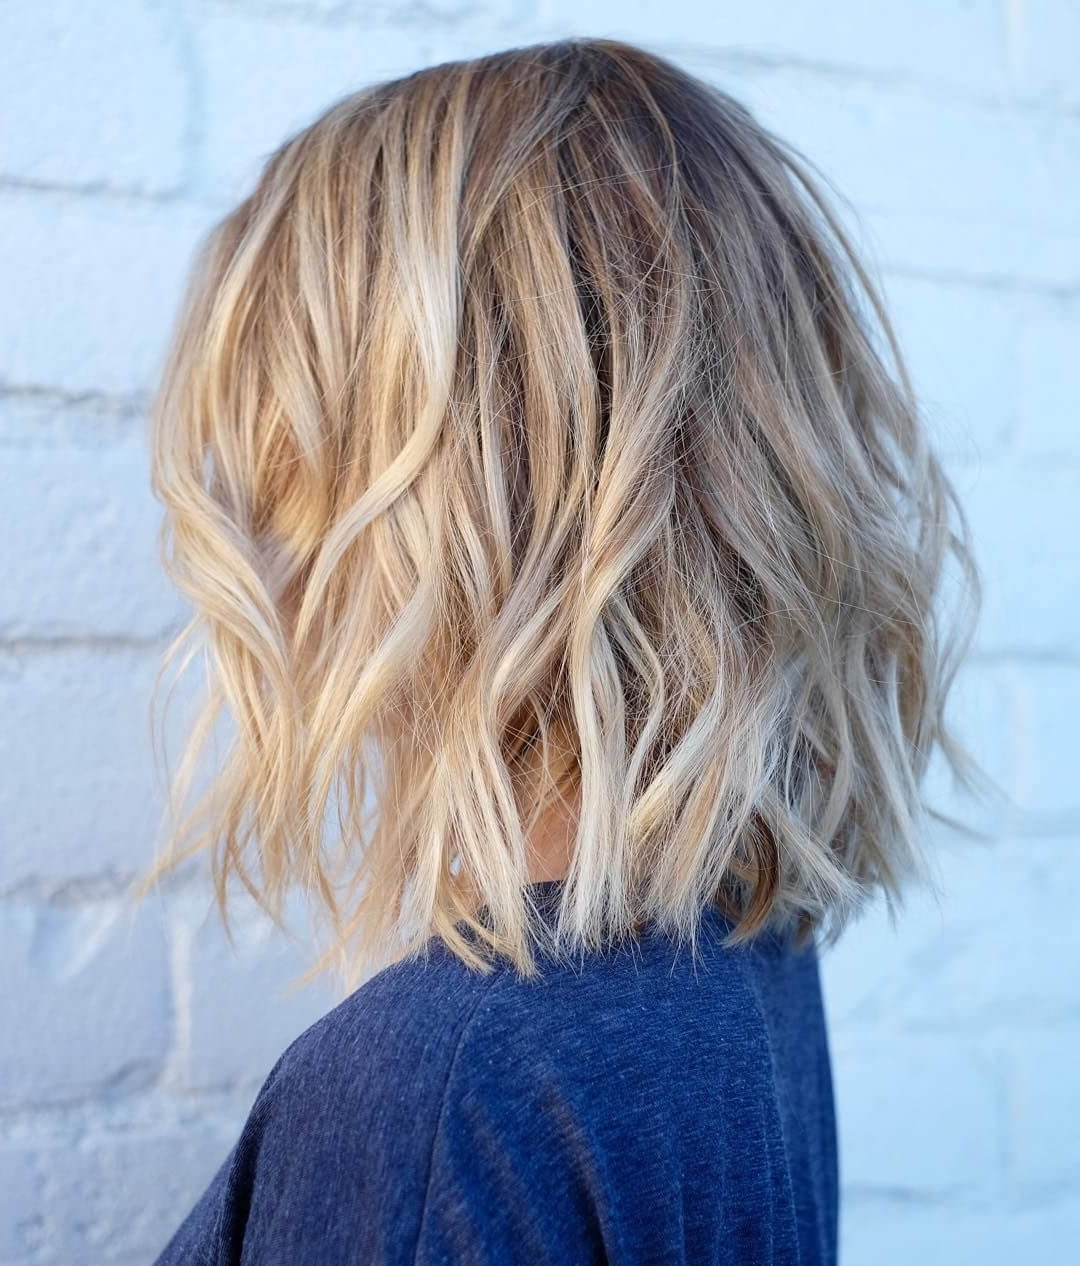 50 Fresh Short Blonde Hair Ideas To Update Your Style In 2018 Throughout 2017 Long Bob Blonde Hairstyles With Babylights (View 5 of 20)